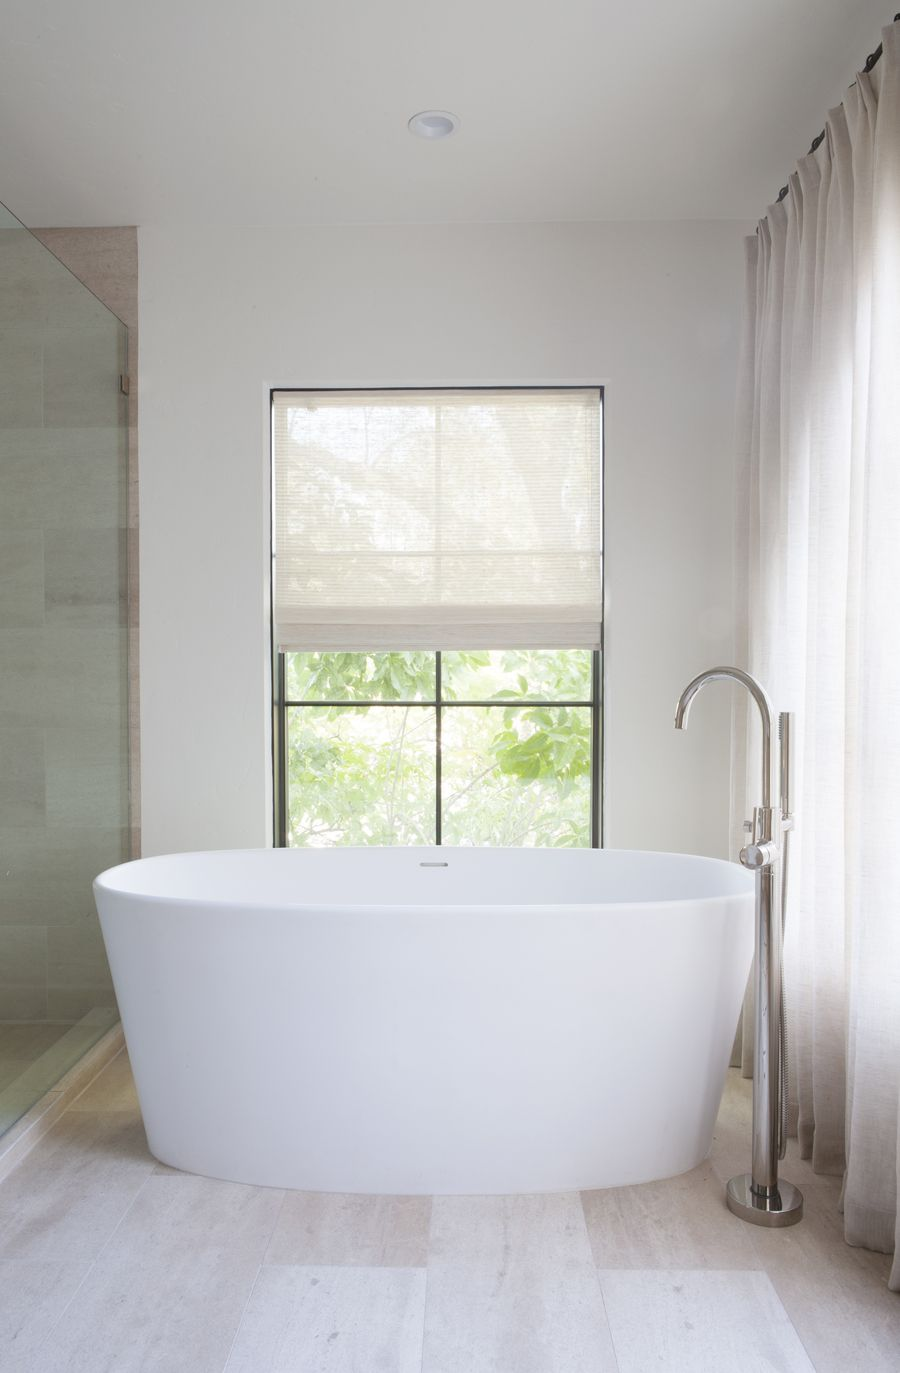 Bathroom in a 1920s Spanish Colonial Revival Home by DISC Interiors ...